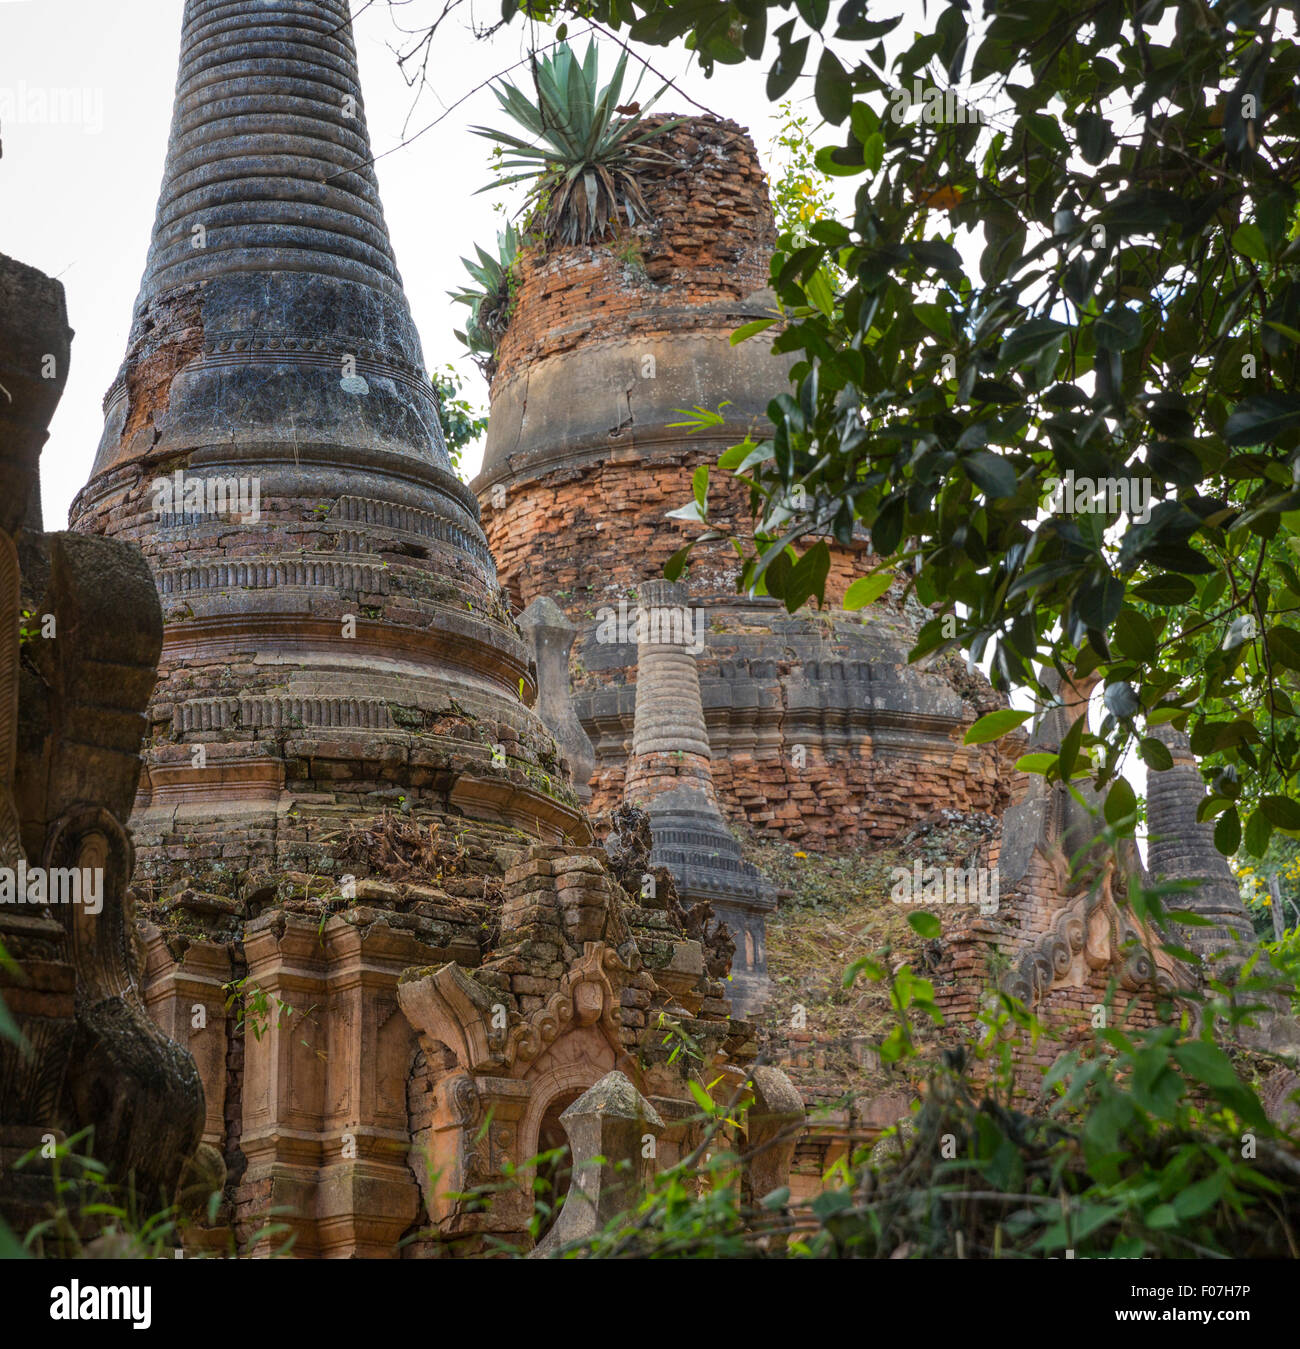 Overgrown 12th century brick stupas in Nyaung Ohak section of the ancient ruins at Indein, Inle Lake, Shan State, - Stock Image